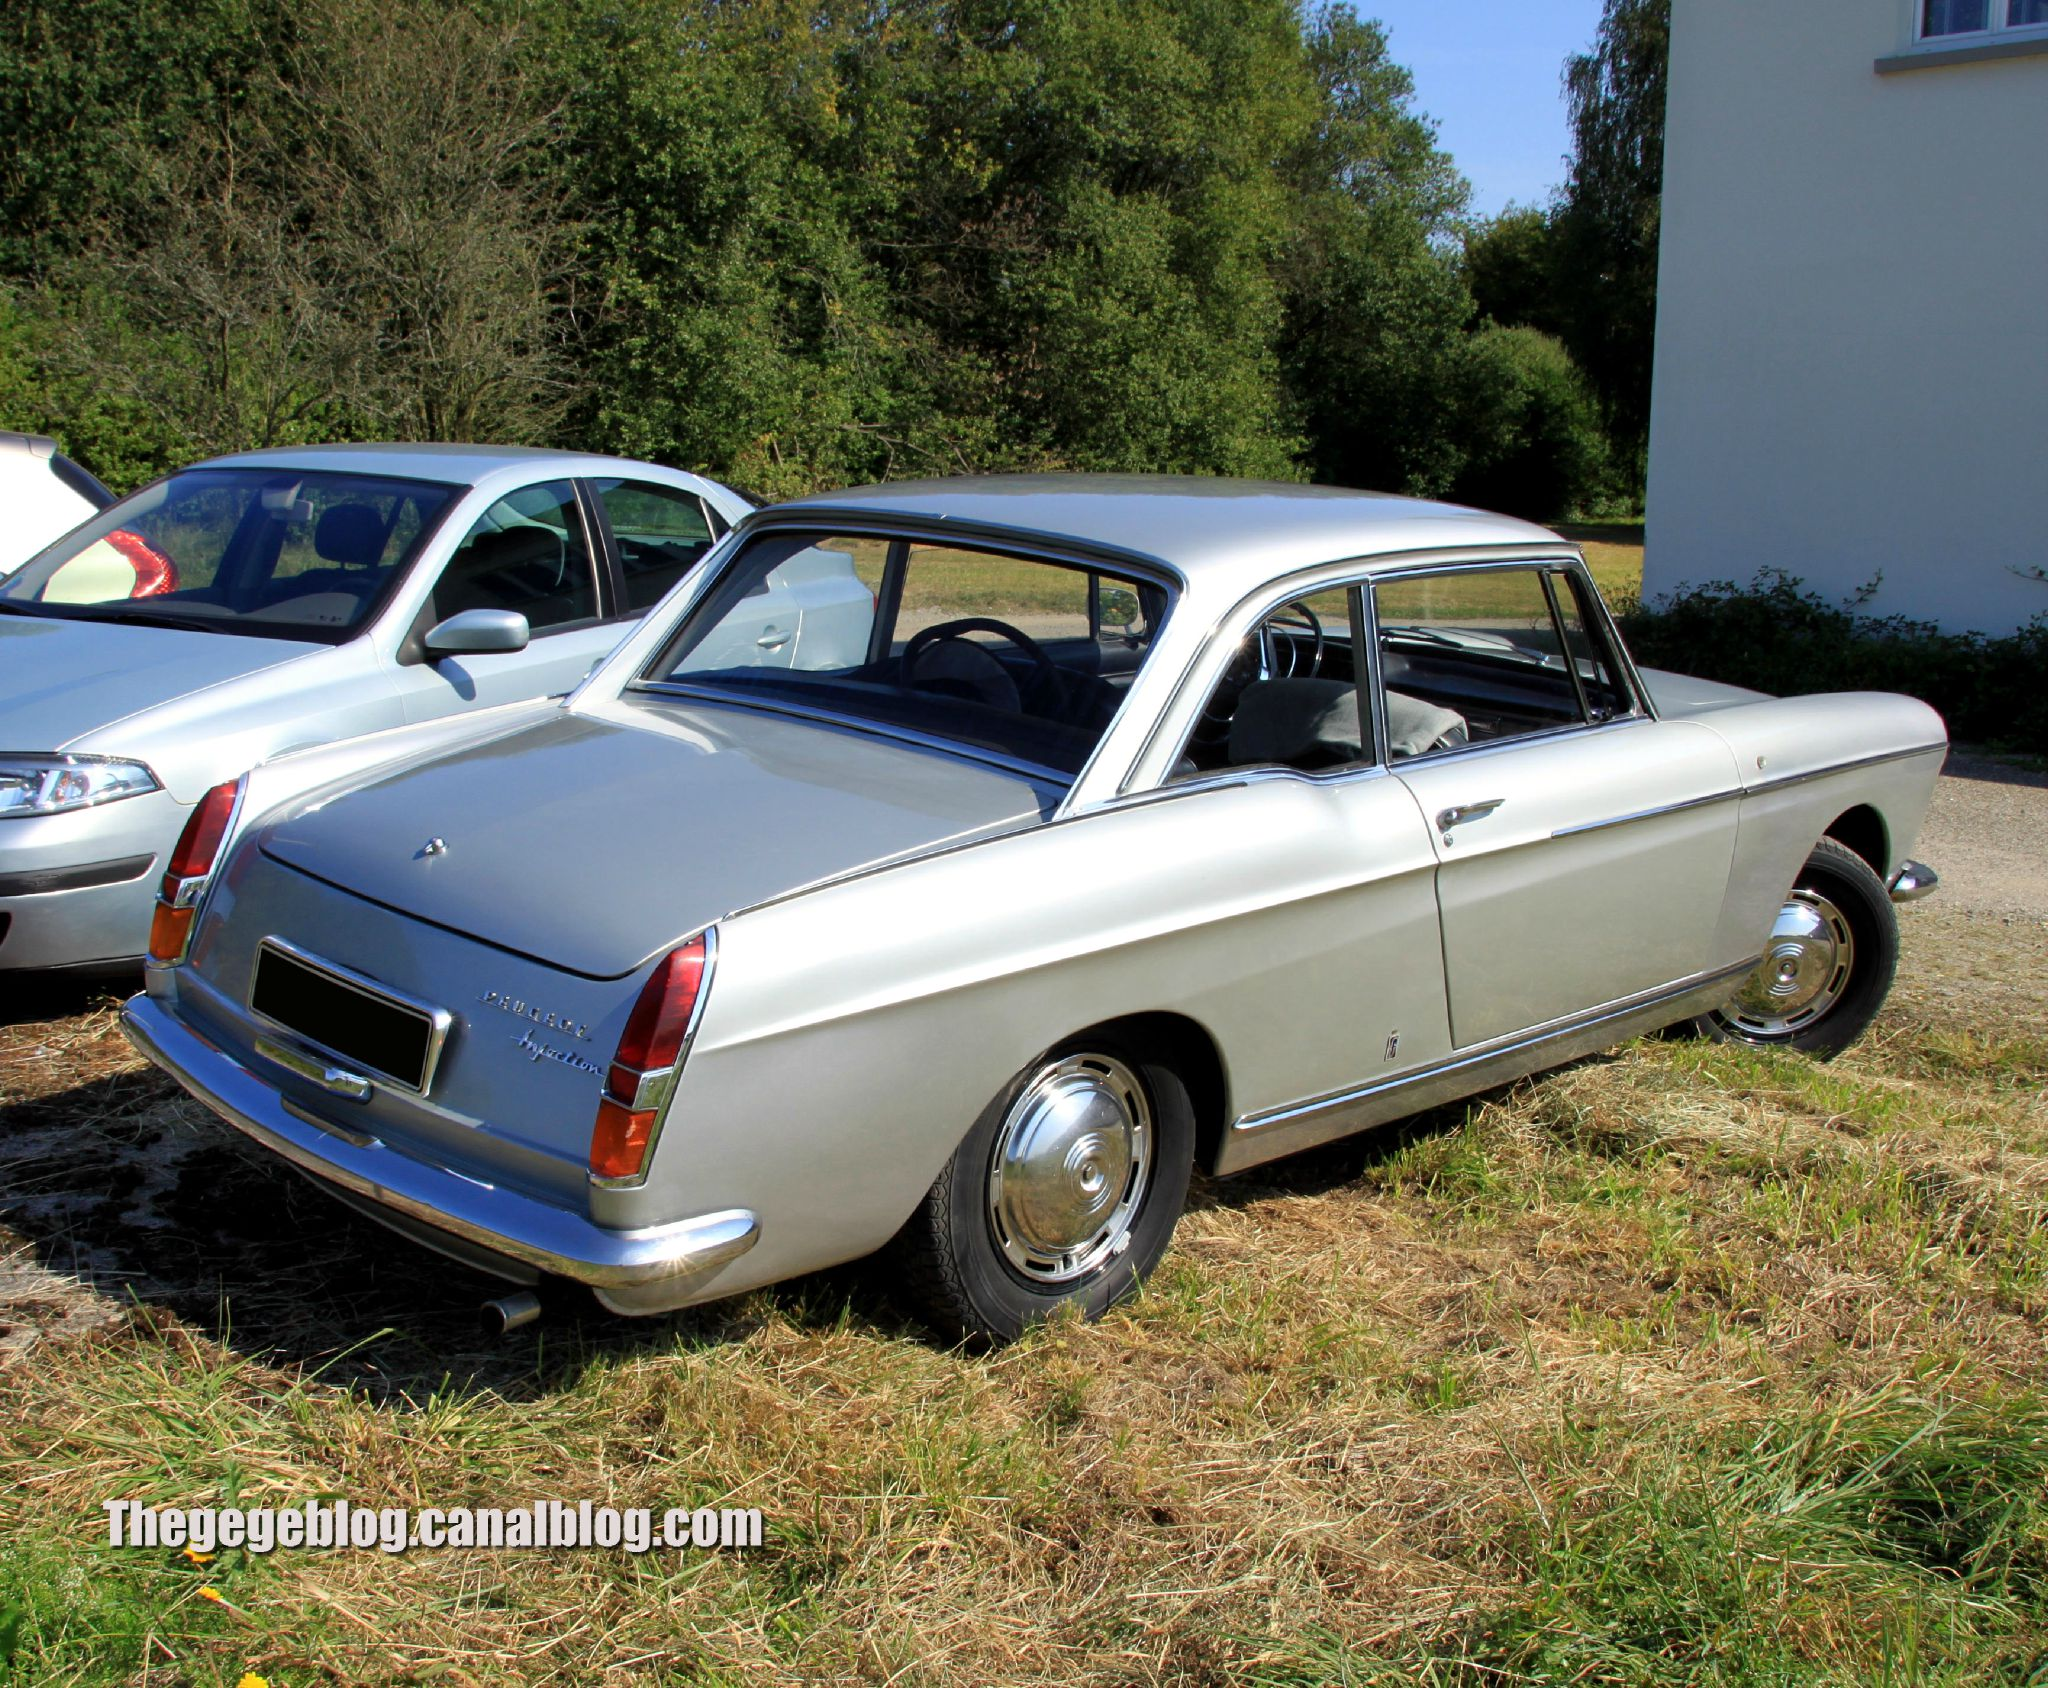 Peugeot 404 coup auto retro nord alsace betschdorf 02